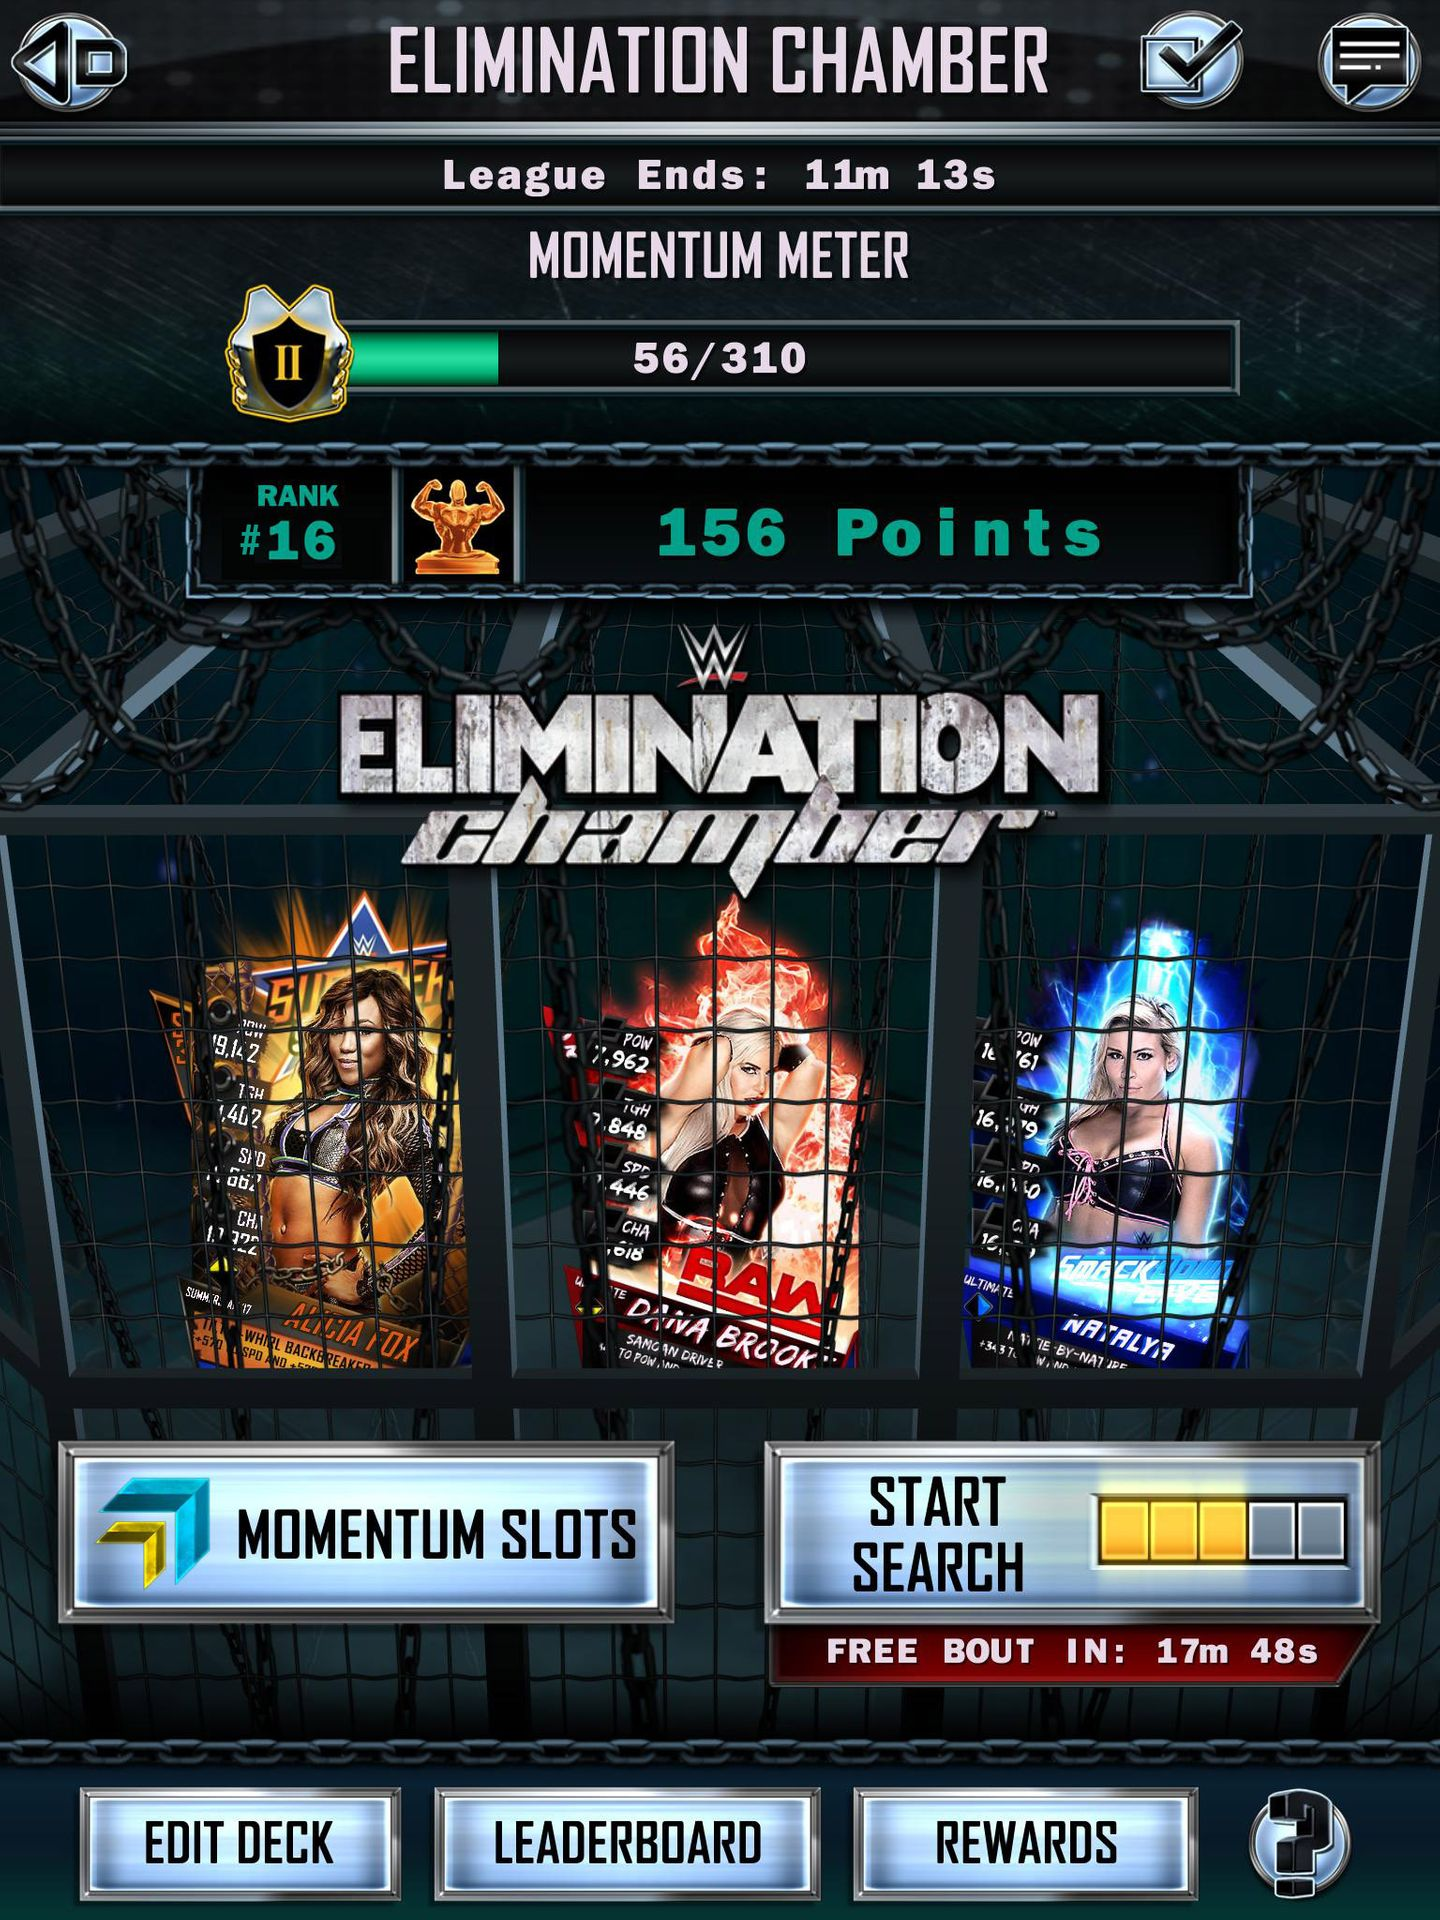 Season 4 Preview: Unified PvP Leagues and the Elimination Chamber